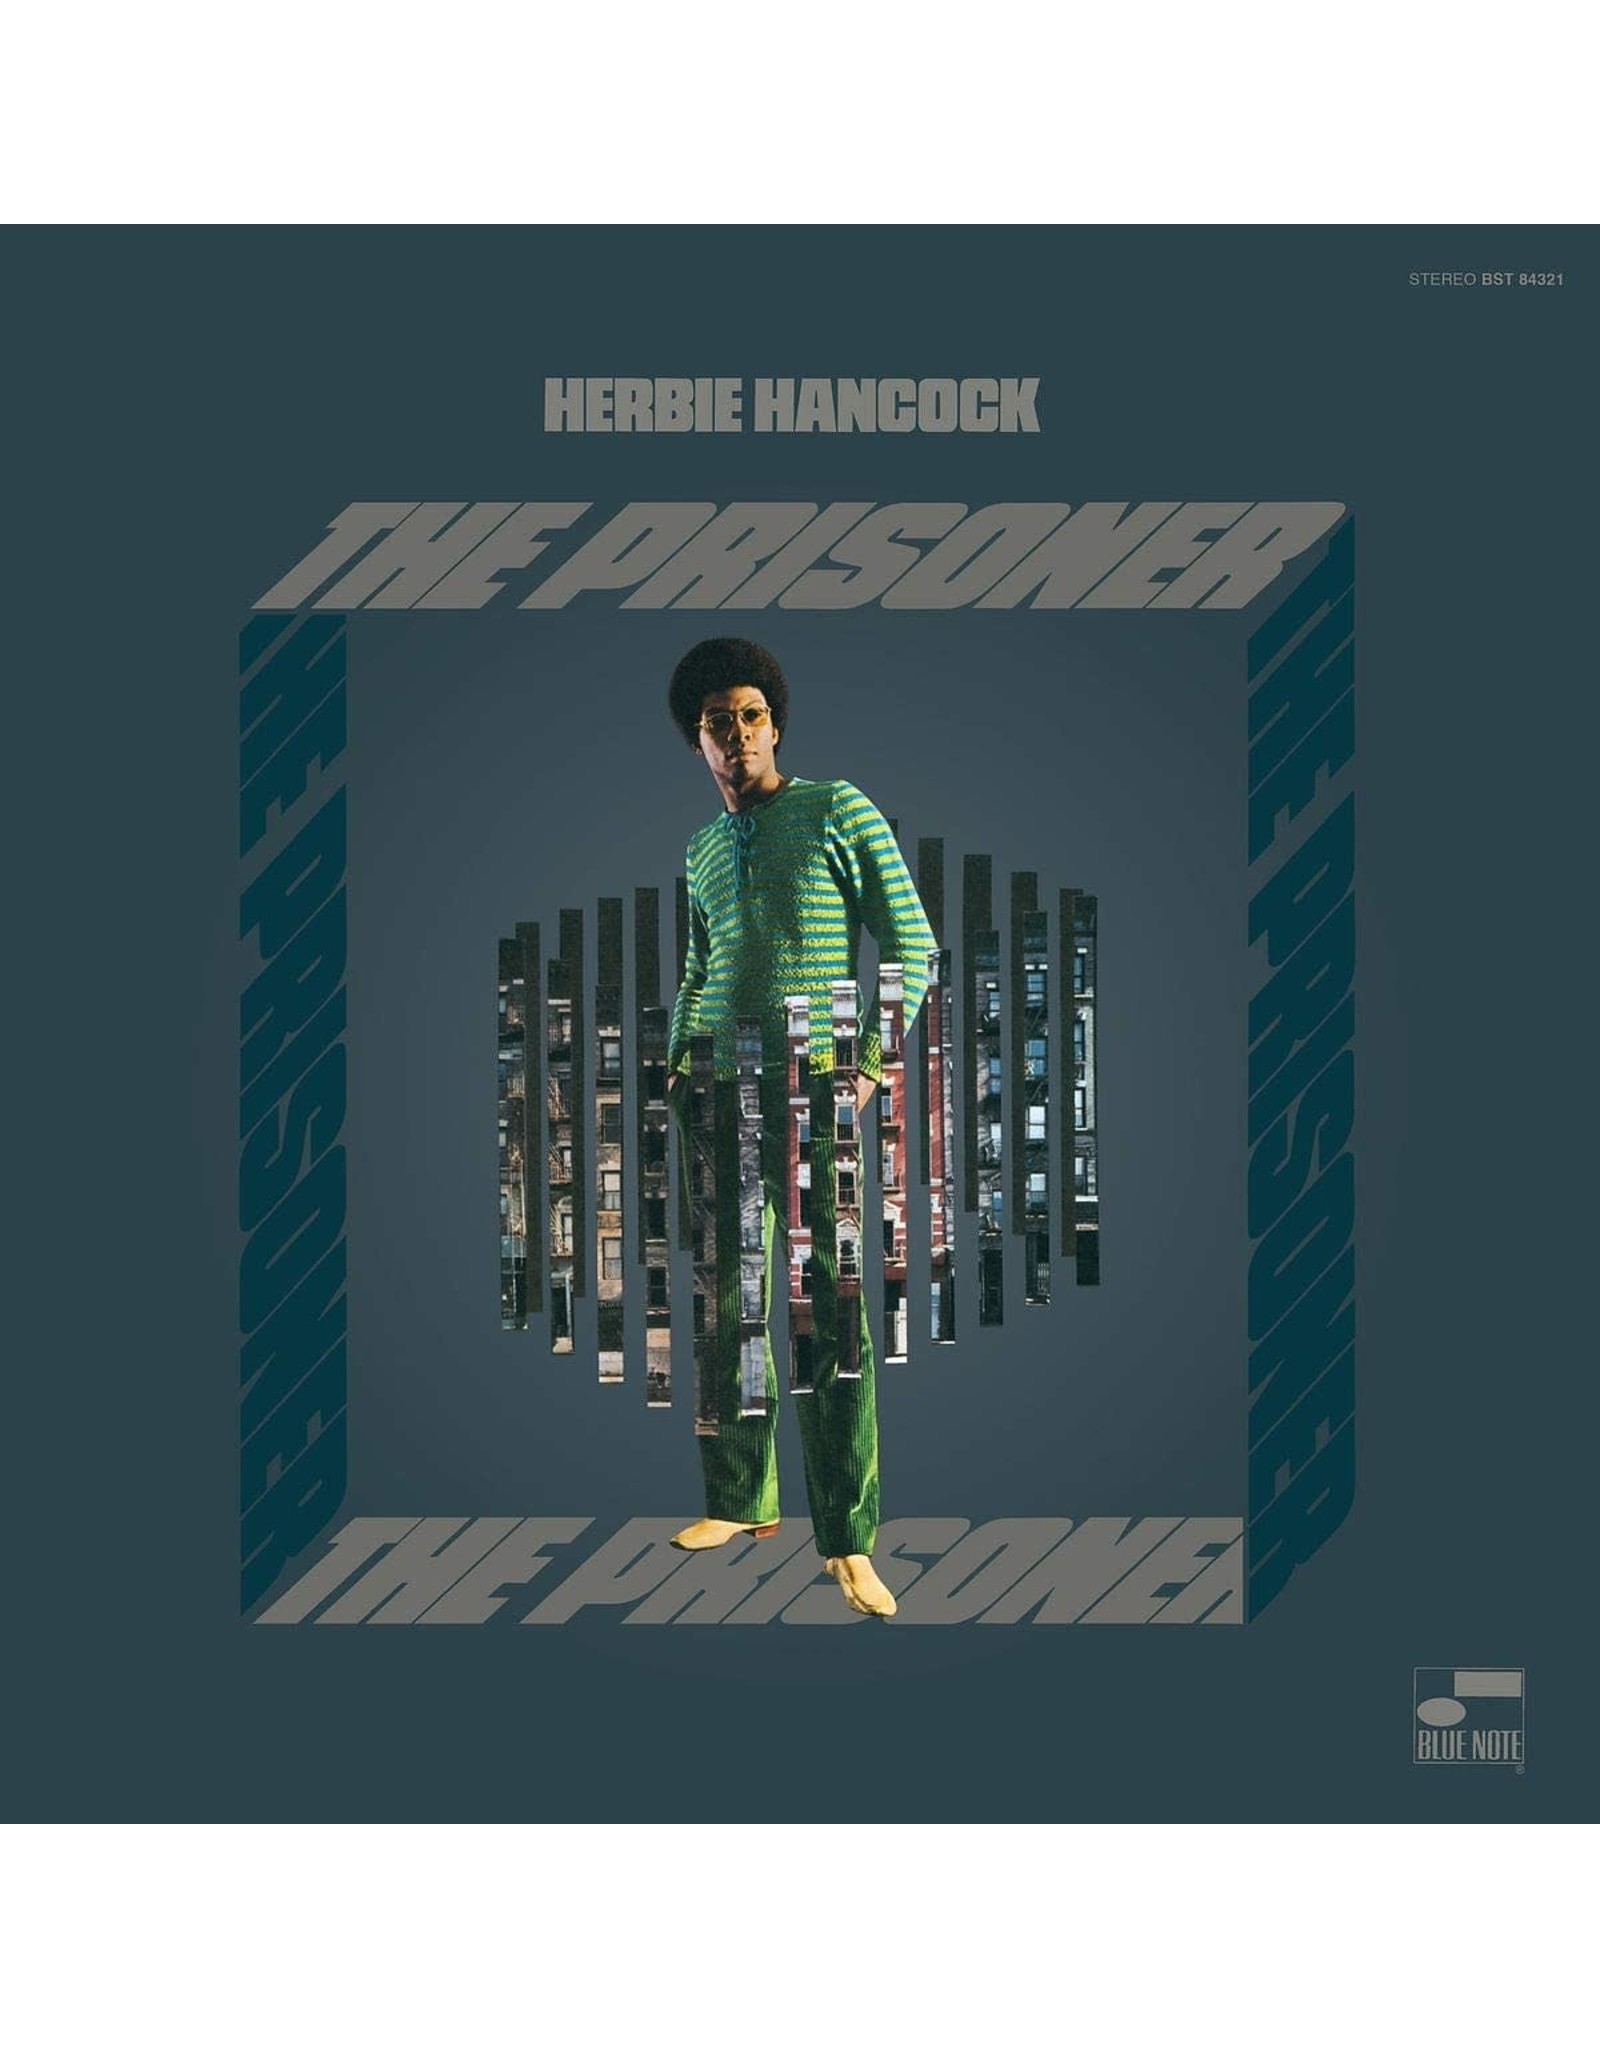 Herbie Hancock - The Prisoner (Blue Note Tone Poet)